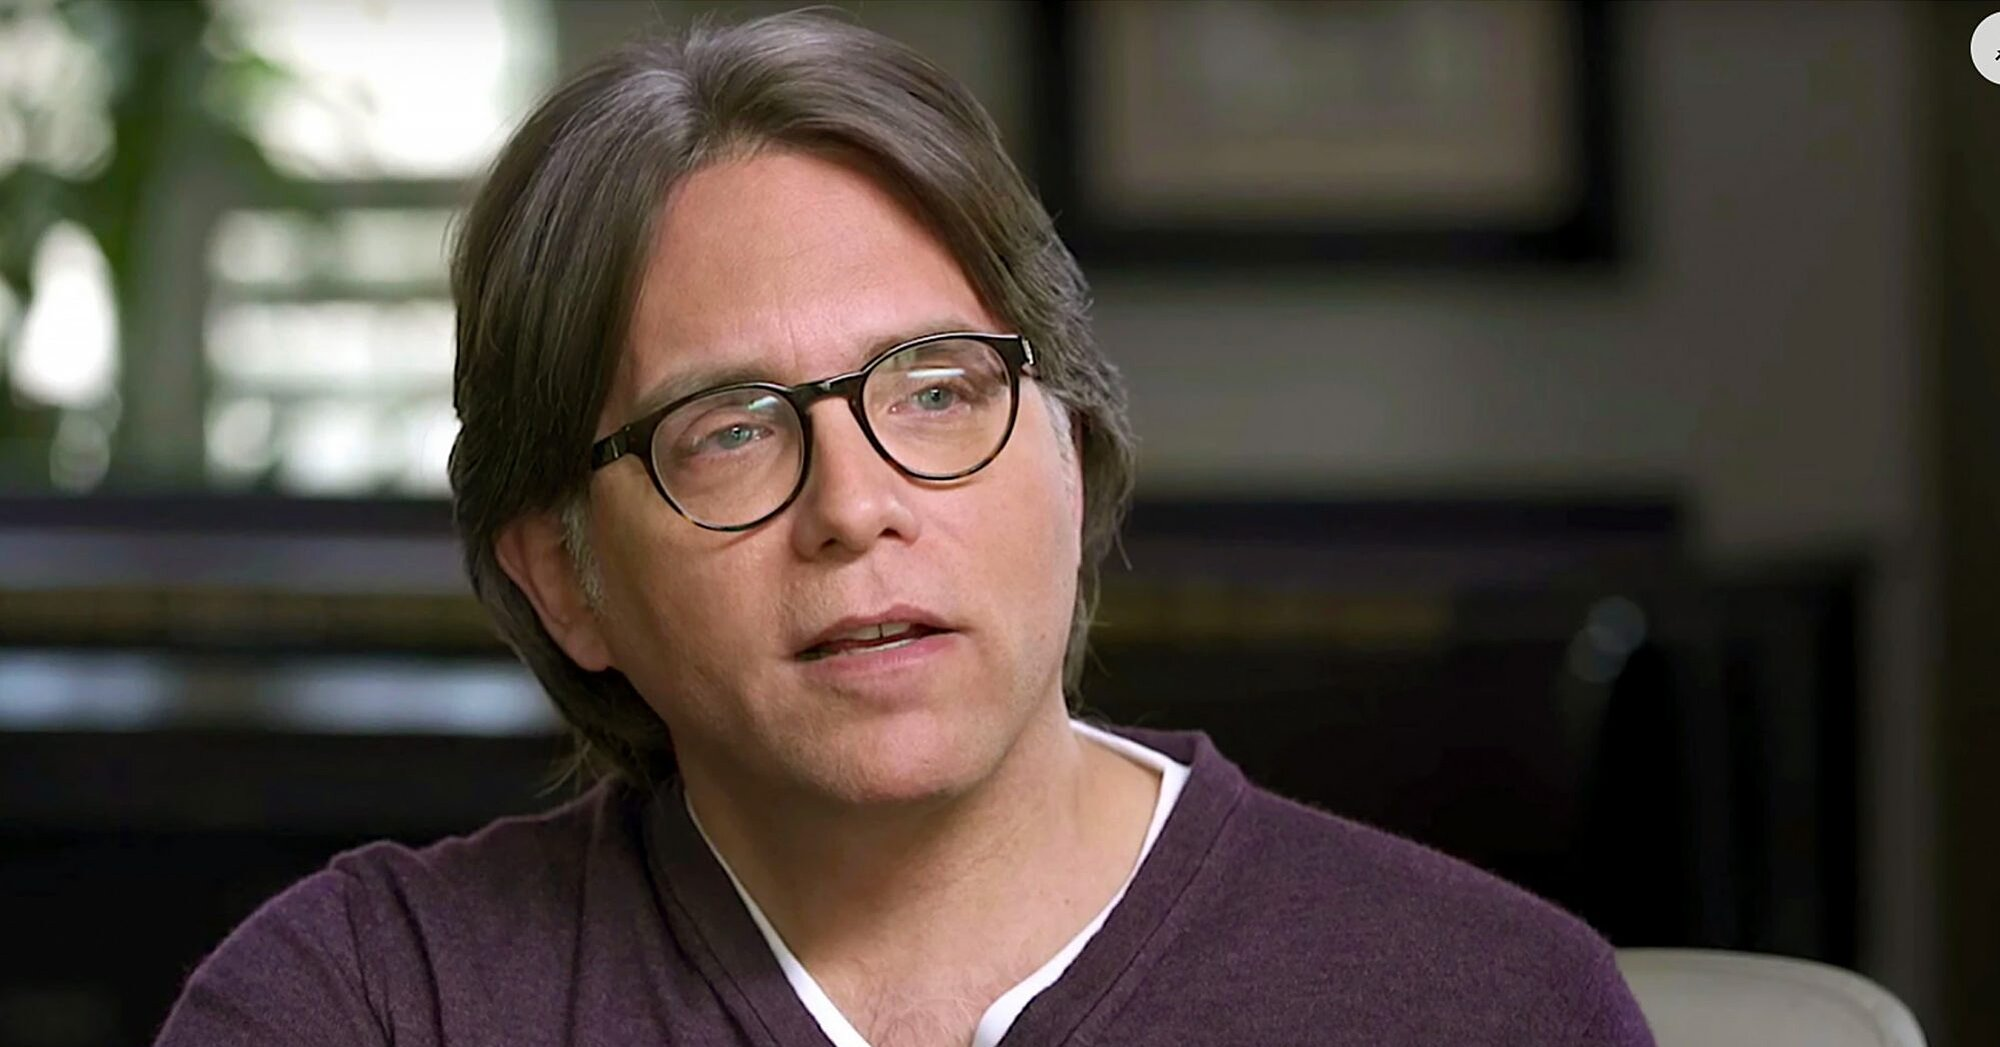 NXIVM Leader Keith Raniere Says He's 'Innocent' as He Speaks Out for First Time Since Arrest